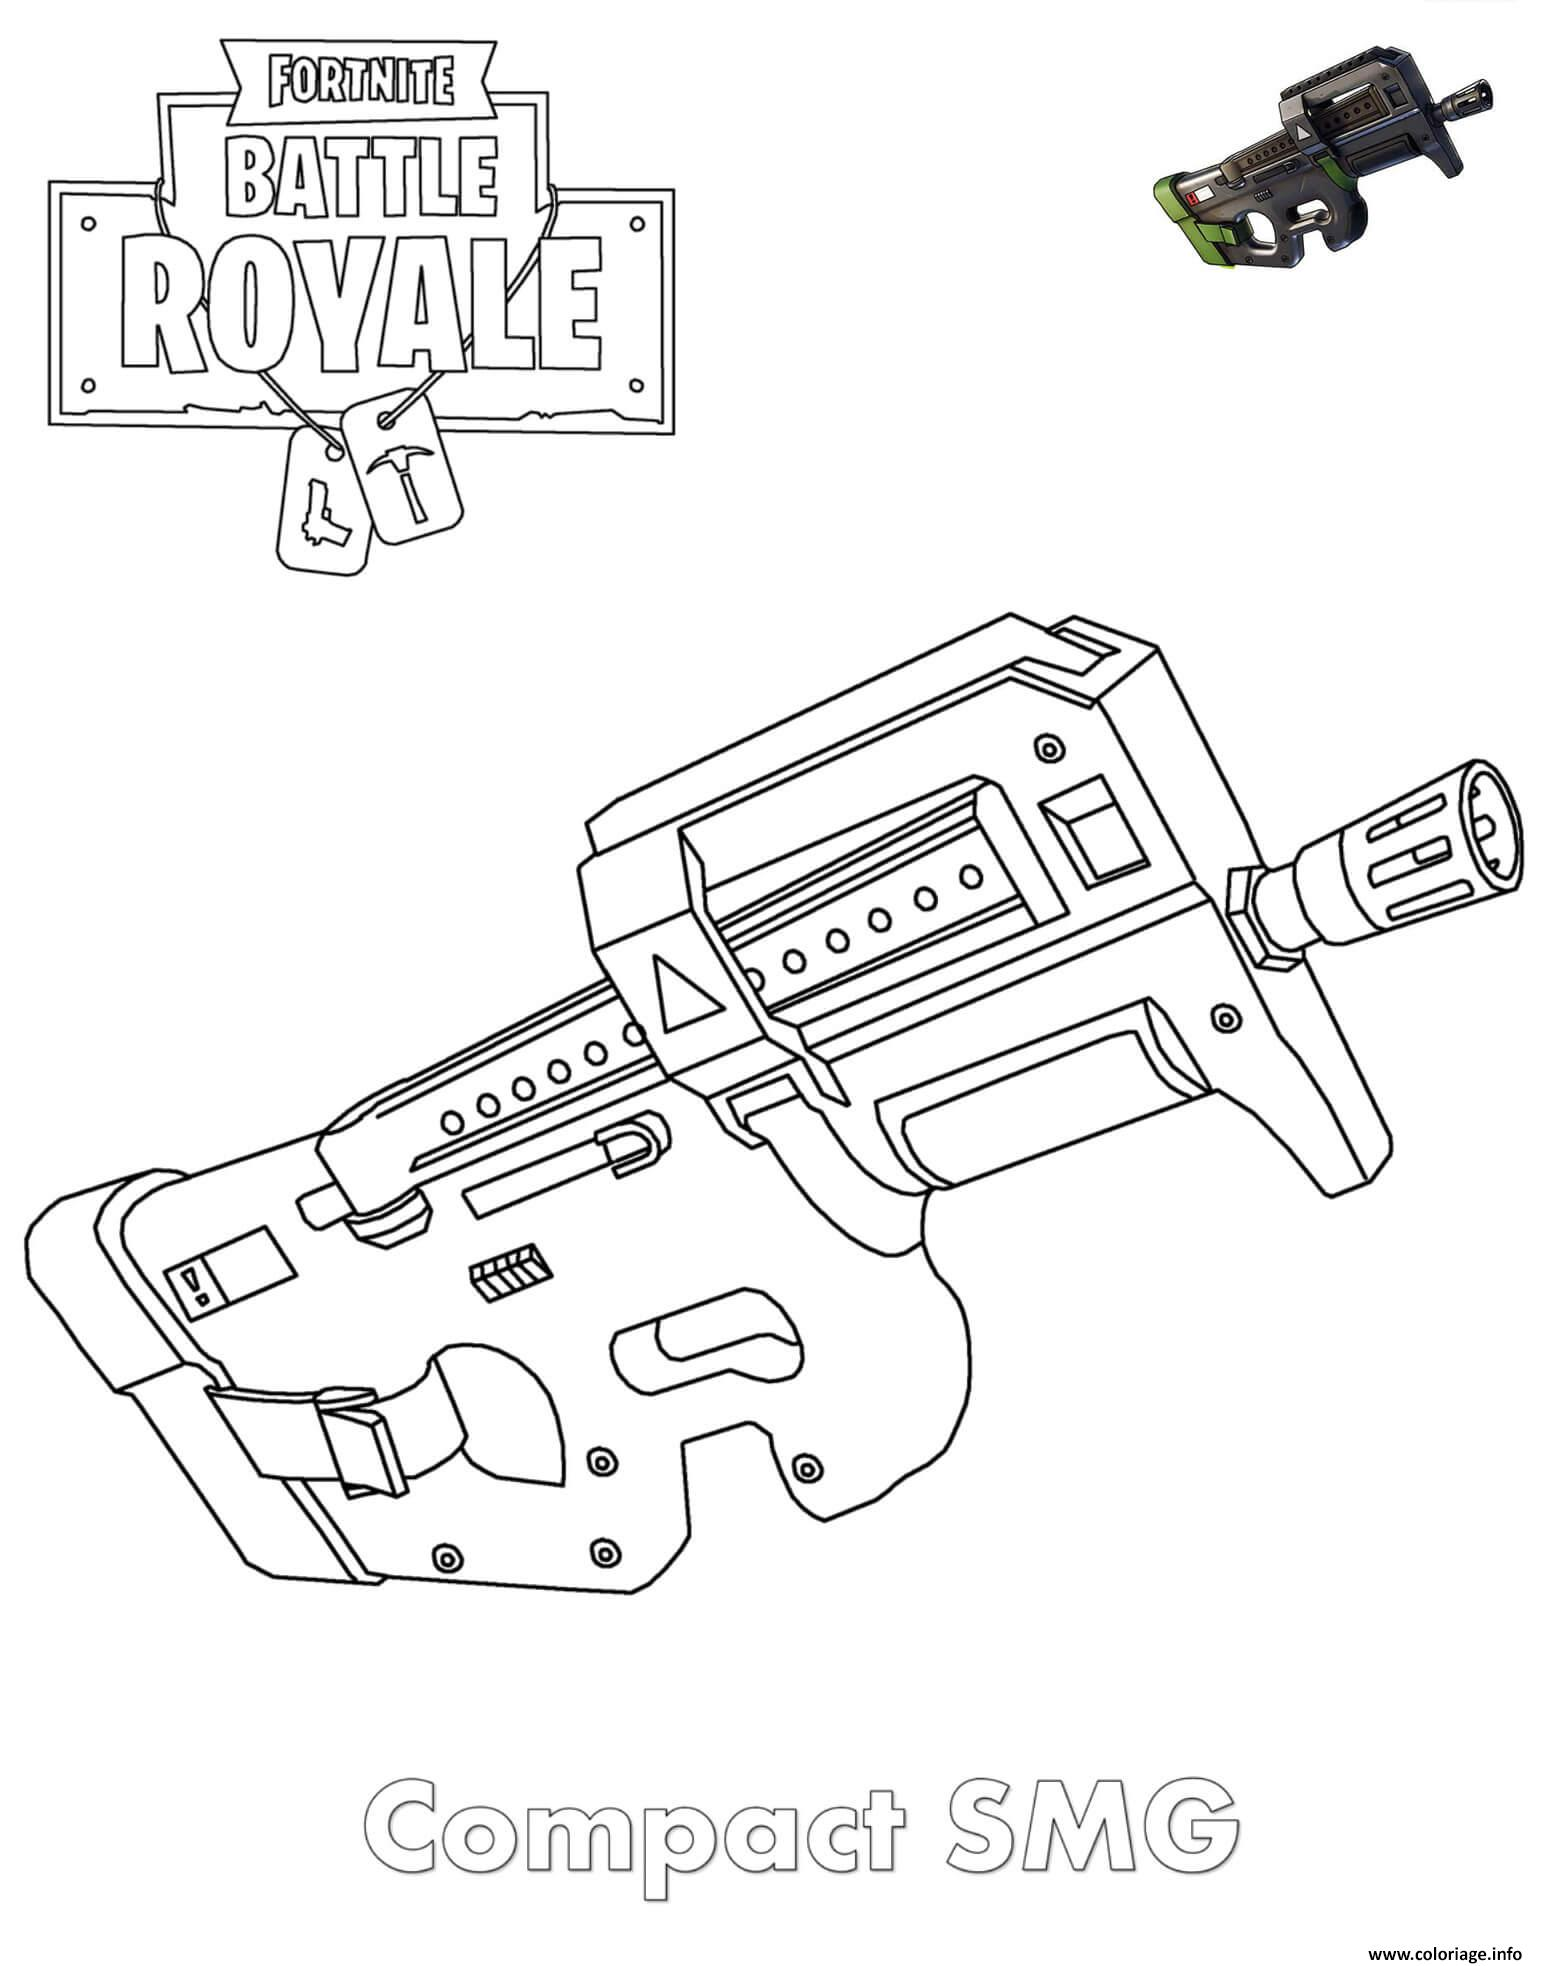 Coloriage smg fortnite - Coloriage arme ...